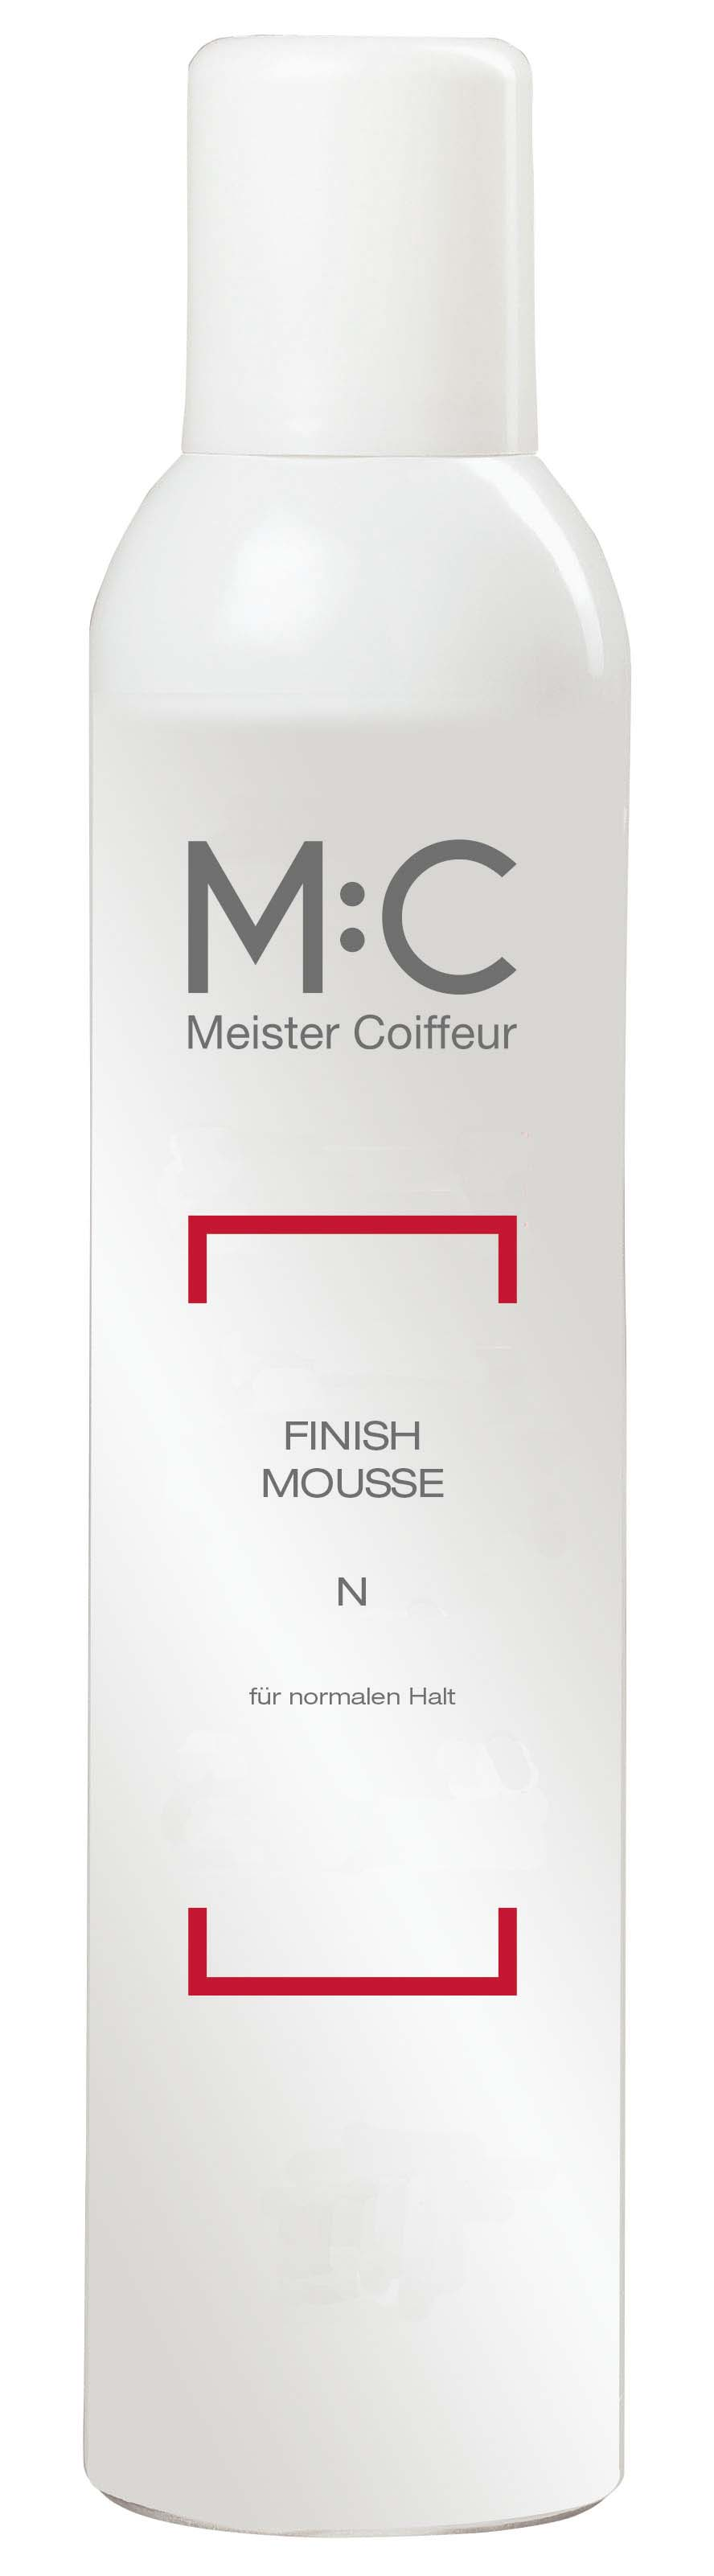 M:C Finish Mousse N